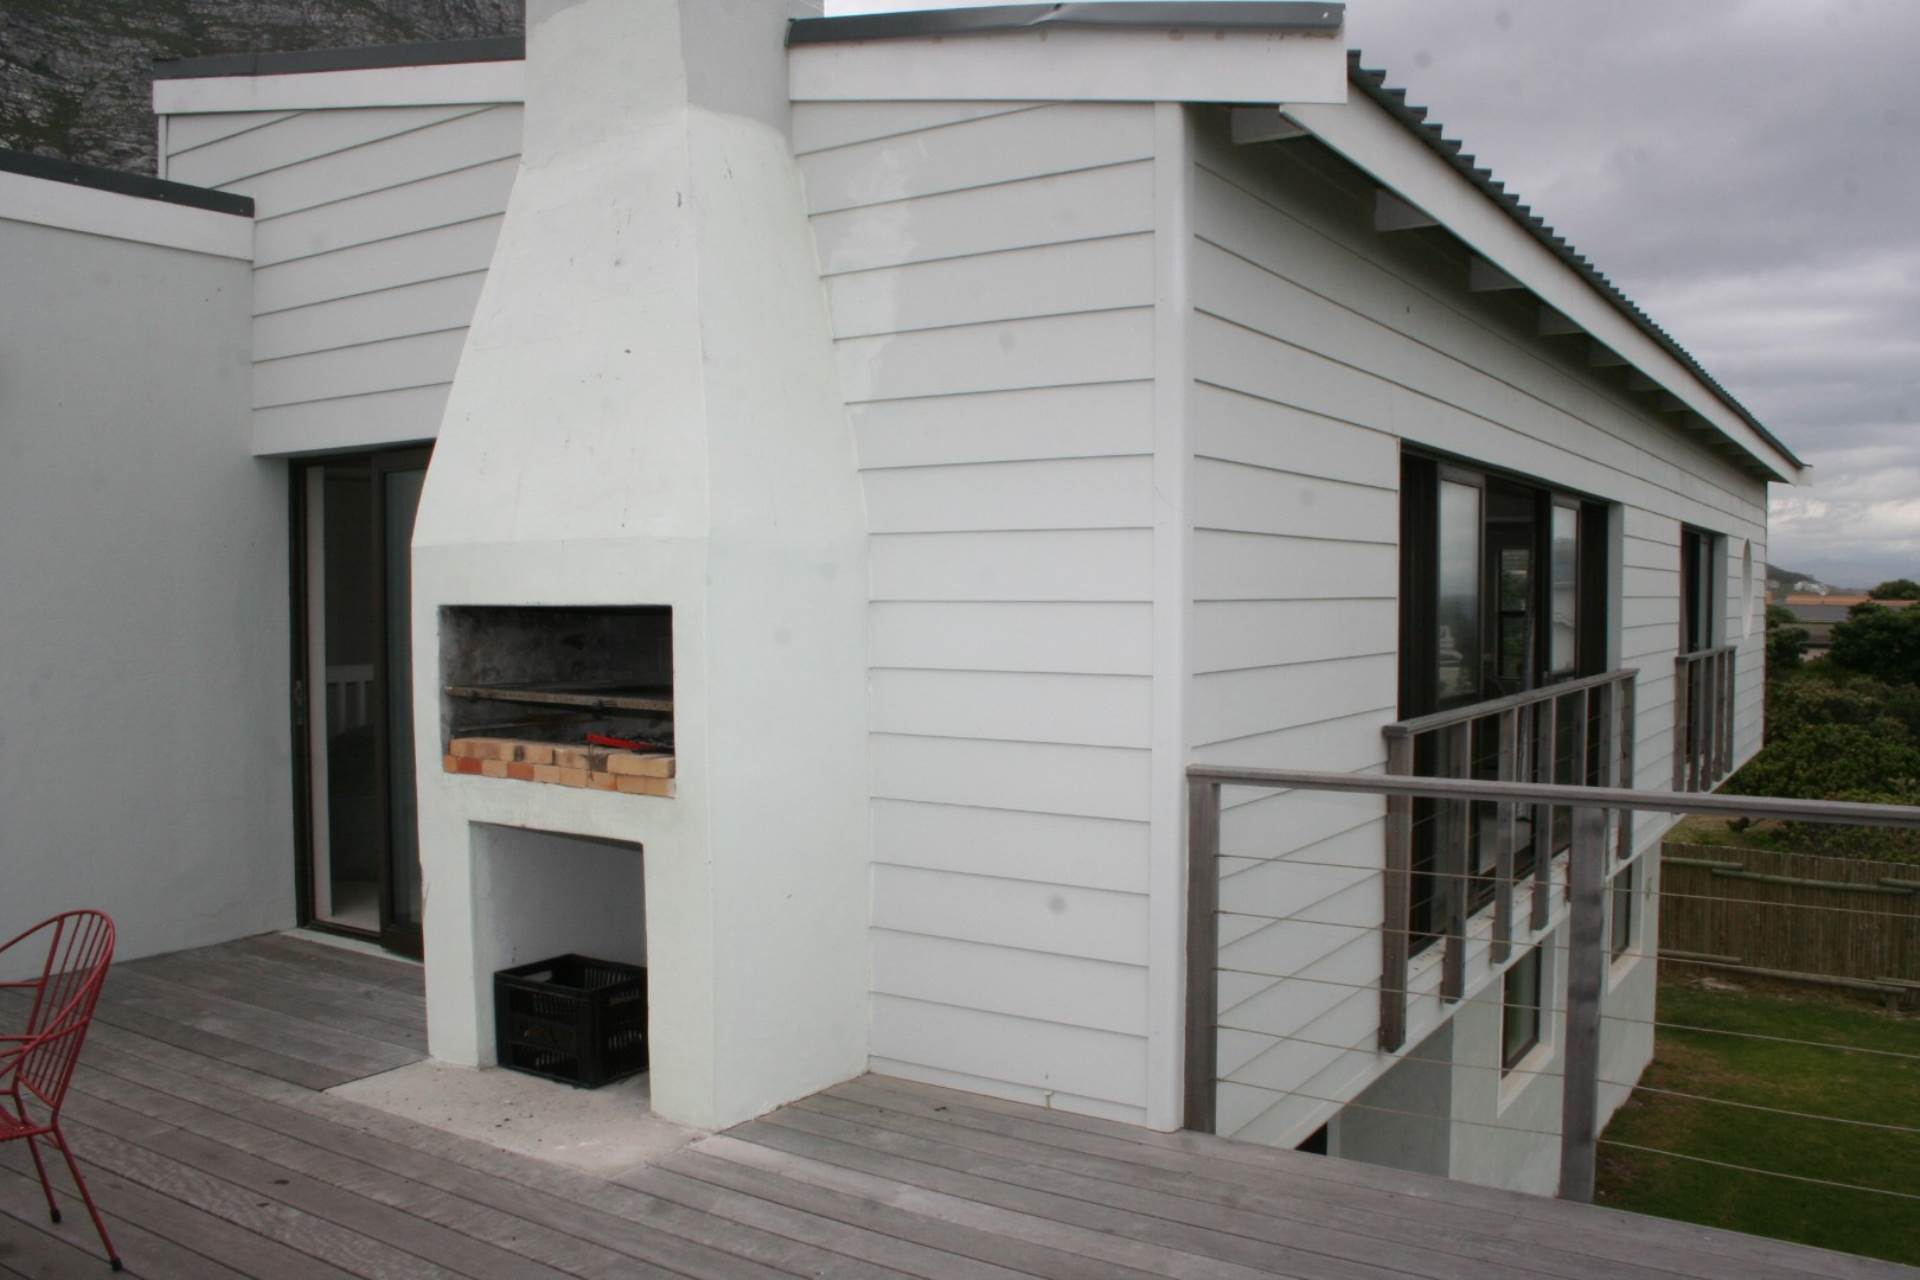 House For Sale In Bettys Bay, Bettys Bay, Western Cape for R 5,500,000